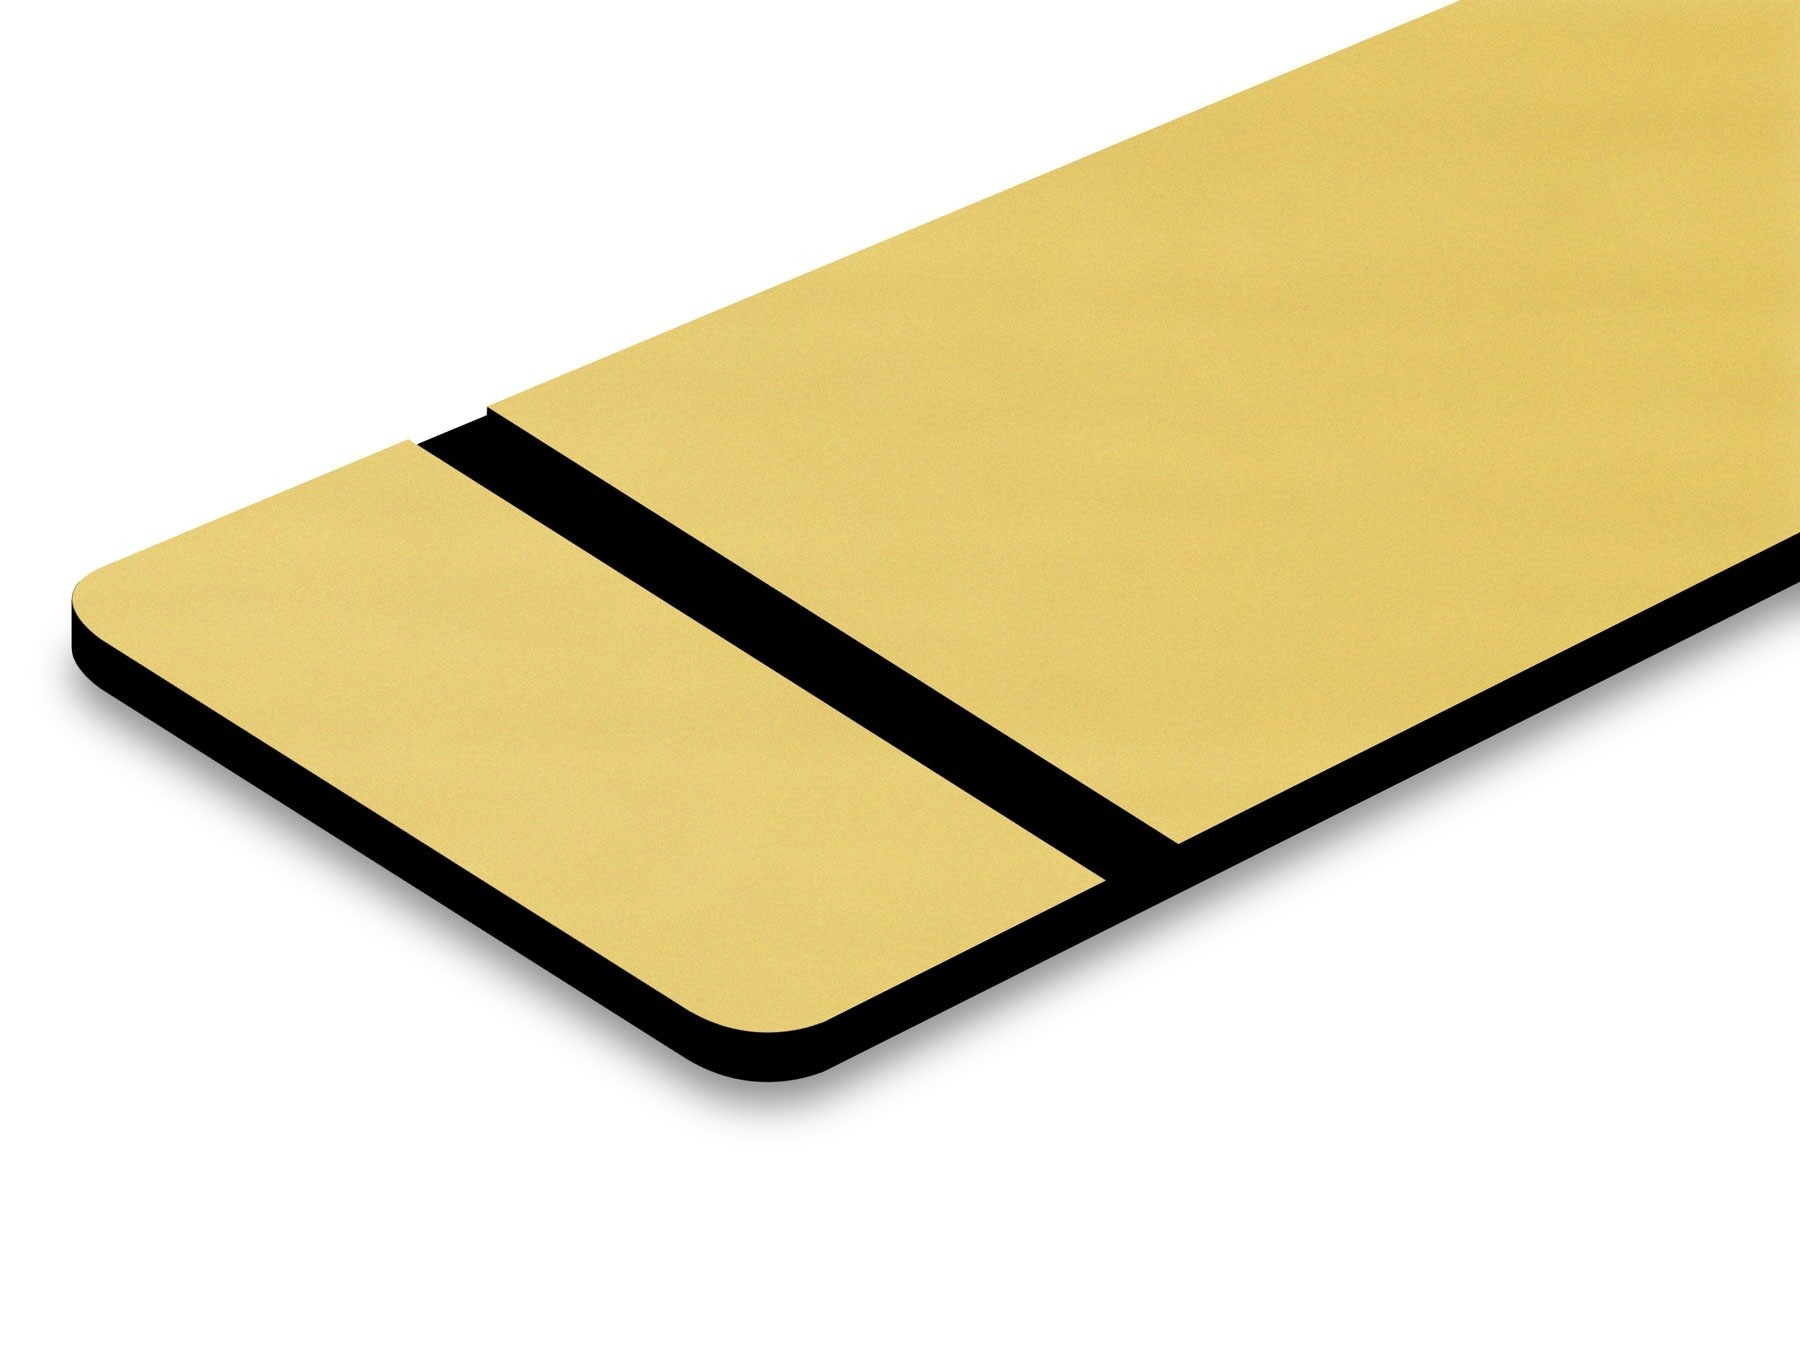 TroLase Metallic, European Gold/Black, 2ply, 0.8 mm